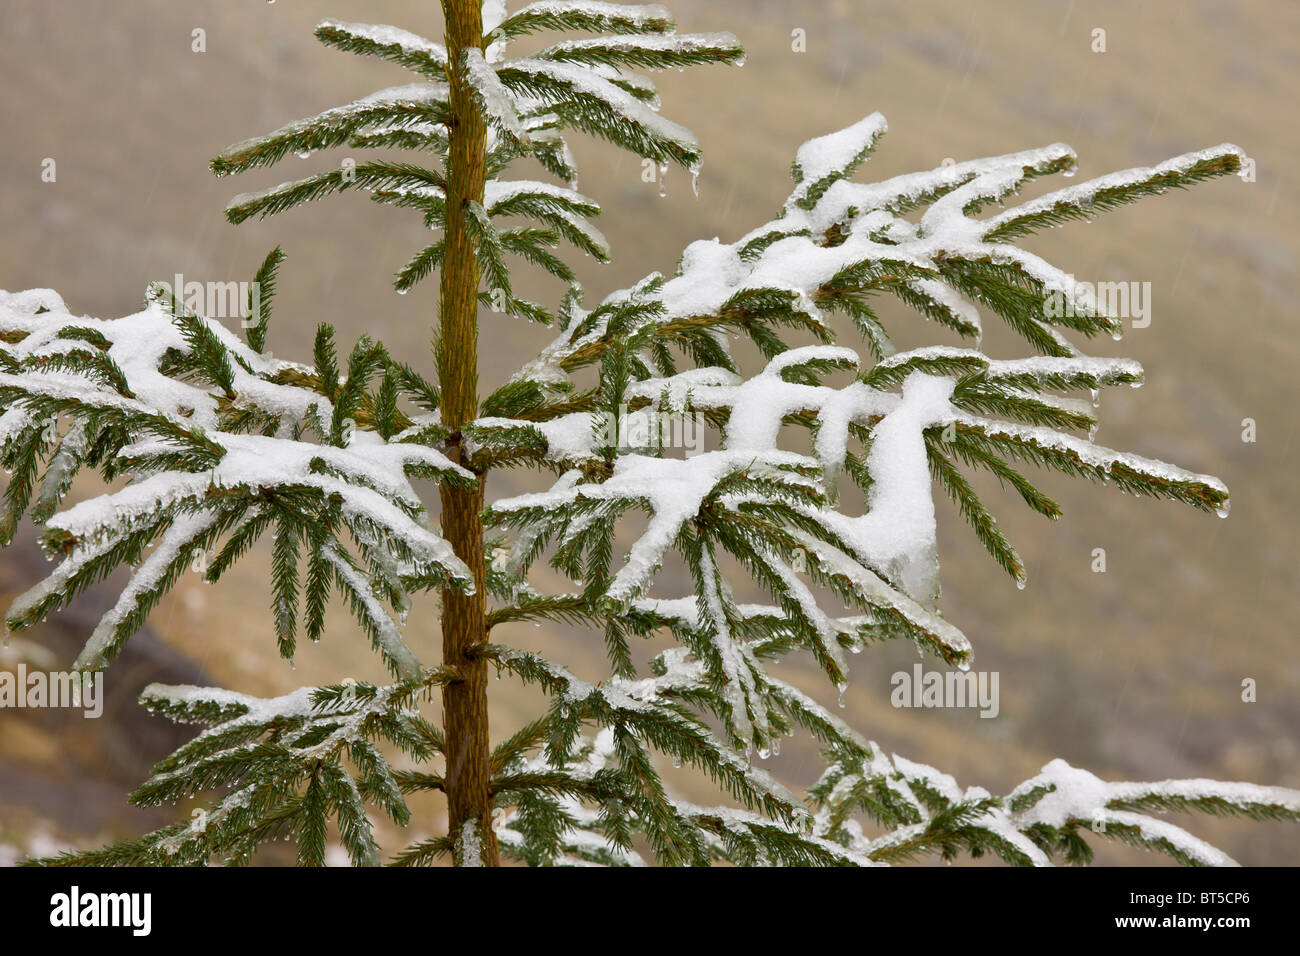 Norway Spruce tree covered with light snow and frost, high in the Fagaras Mountains, southern carpathians, Romania Stock Photo